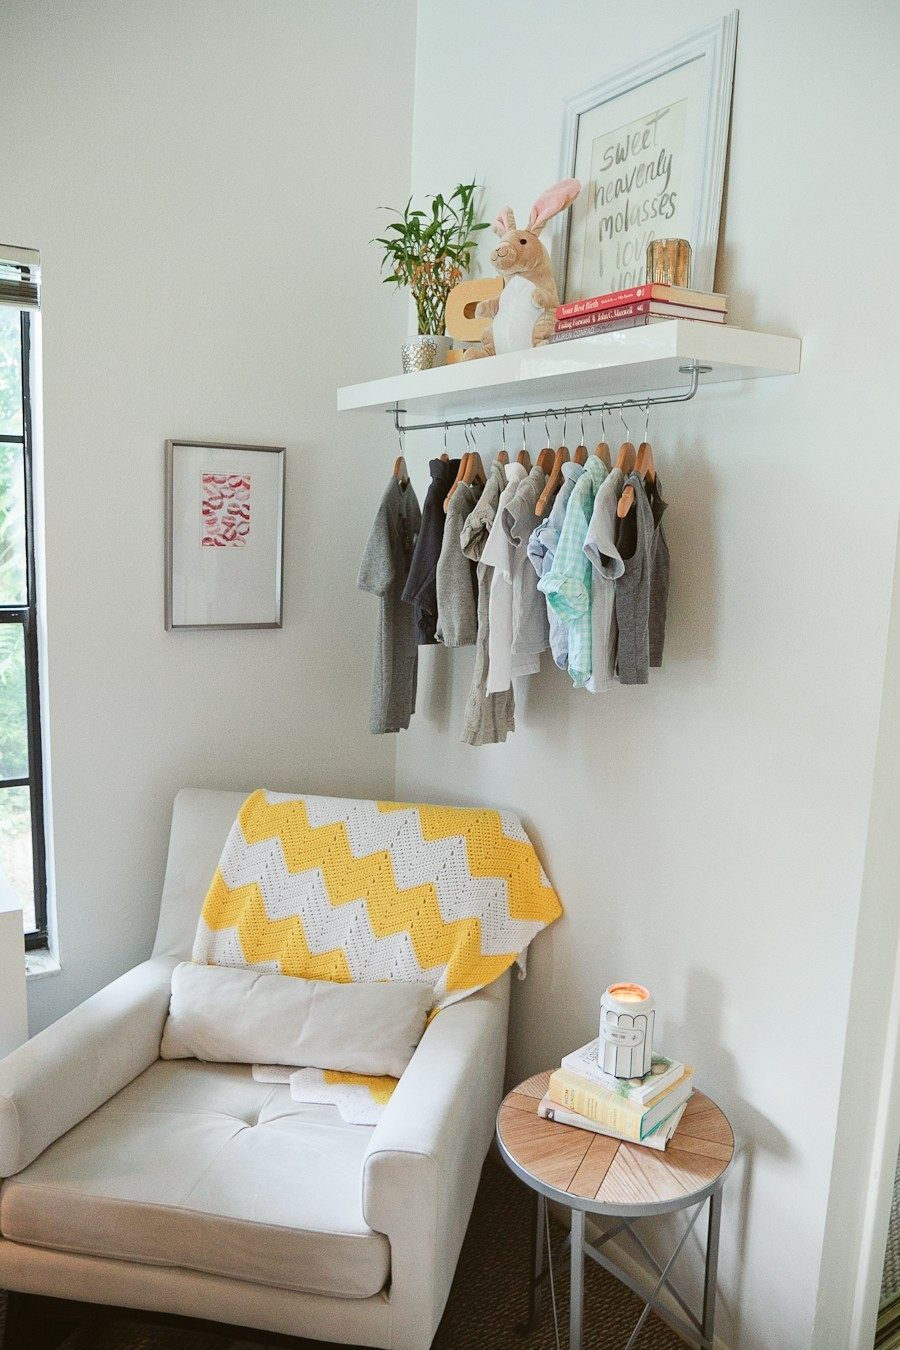 5 Tips to Cozy Up a Rental Space | Bedroom Makeover on Fresh Mommy Blog